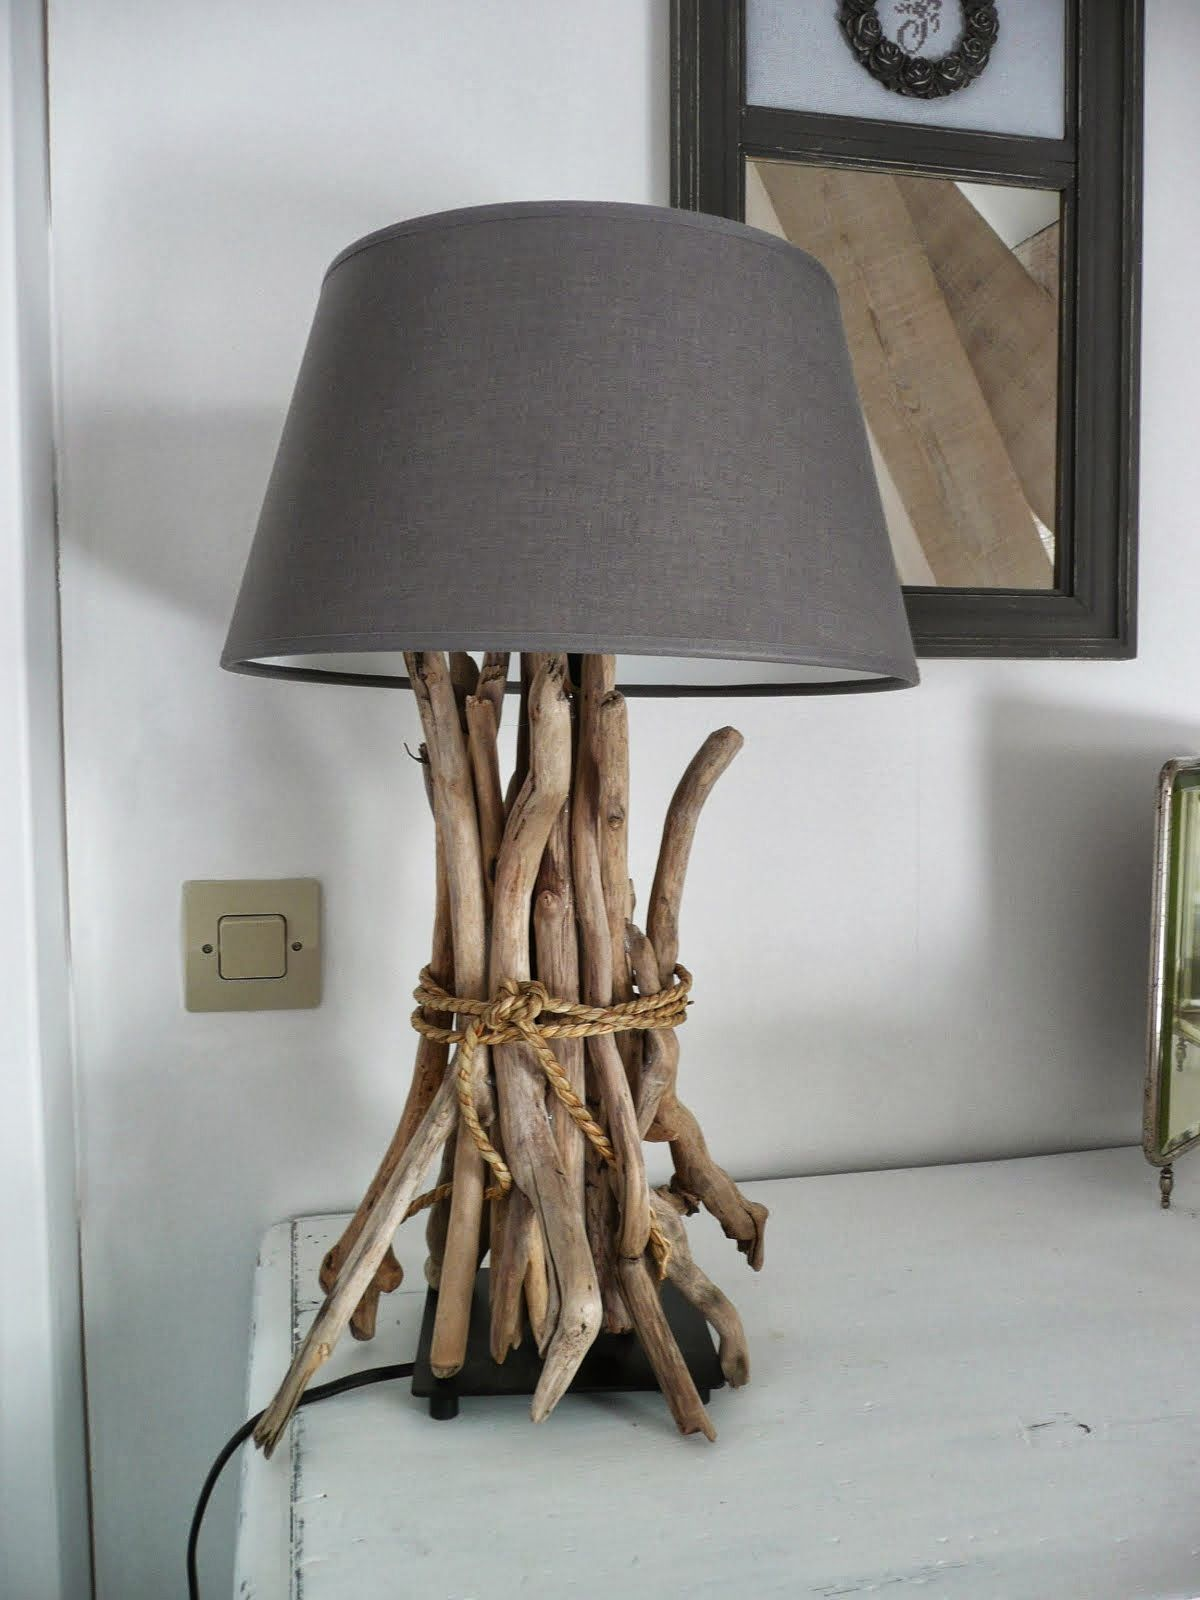 Drift wood lamp - IKEA Hackers - Would be great for the cabin at ...